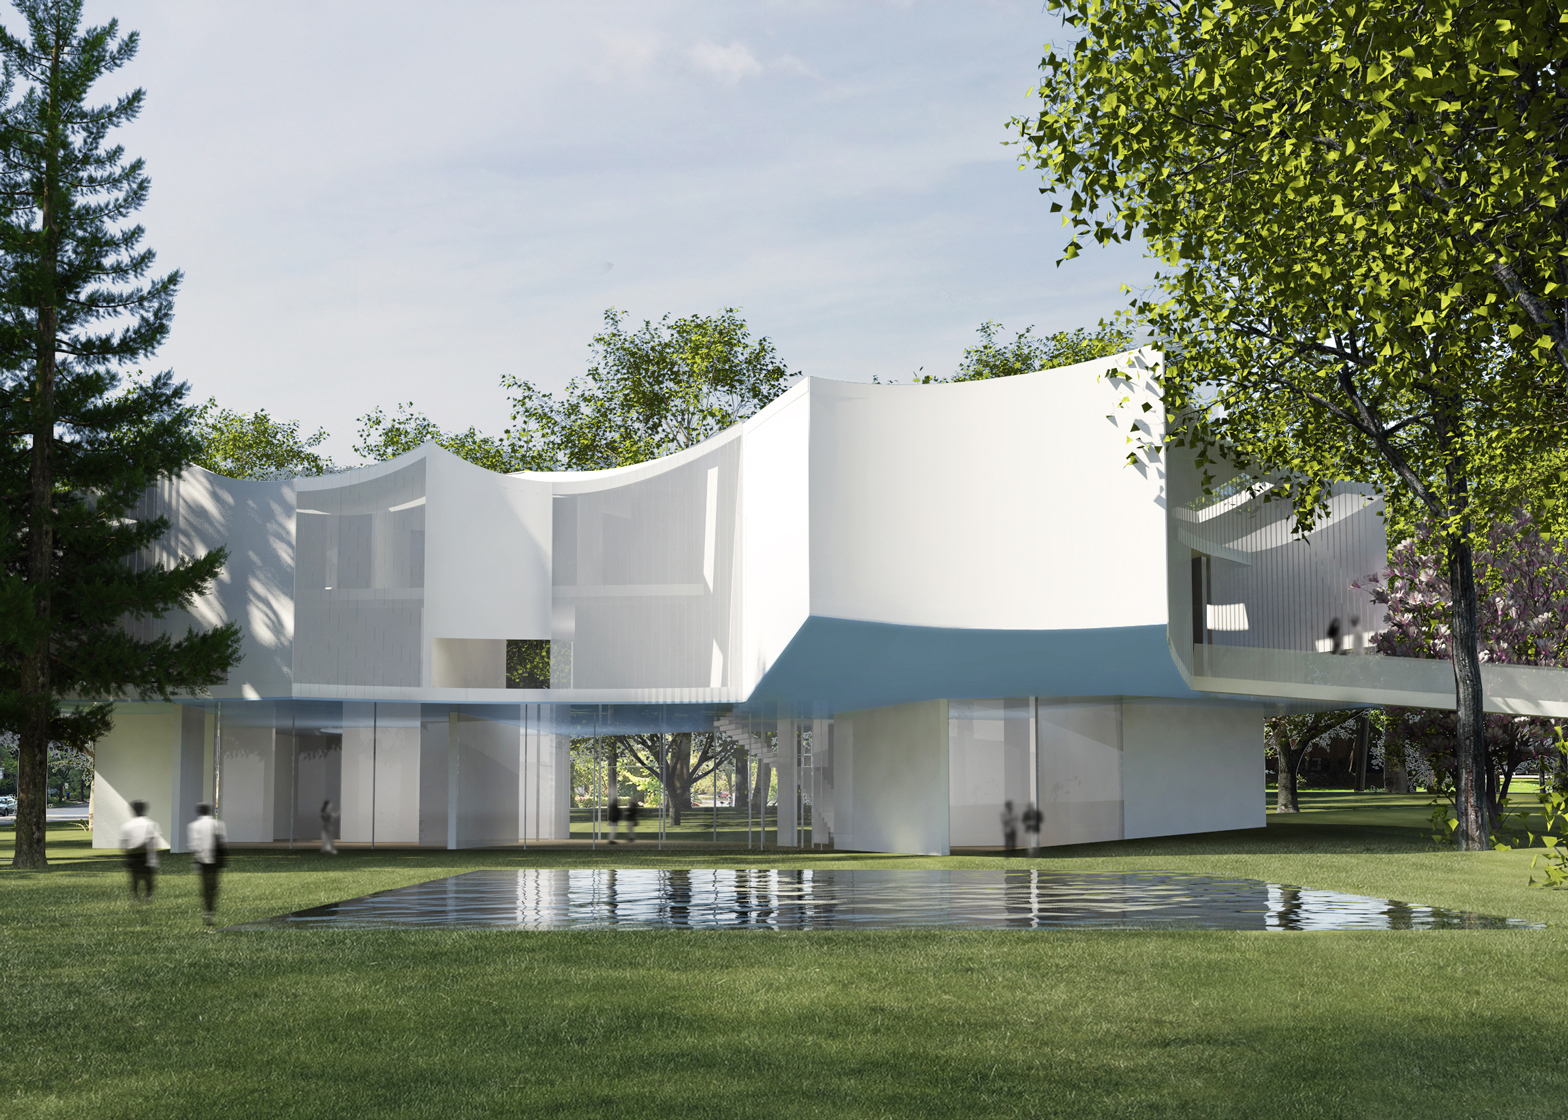 Steven holl architects e architect for House builder